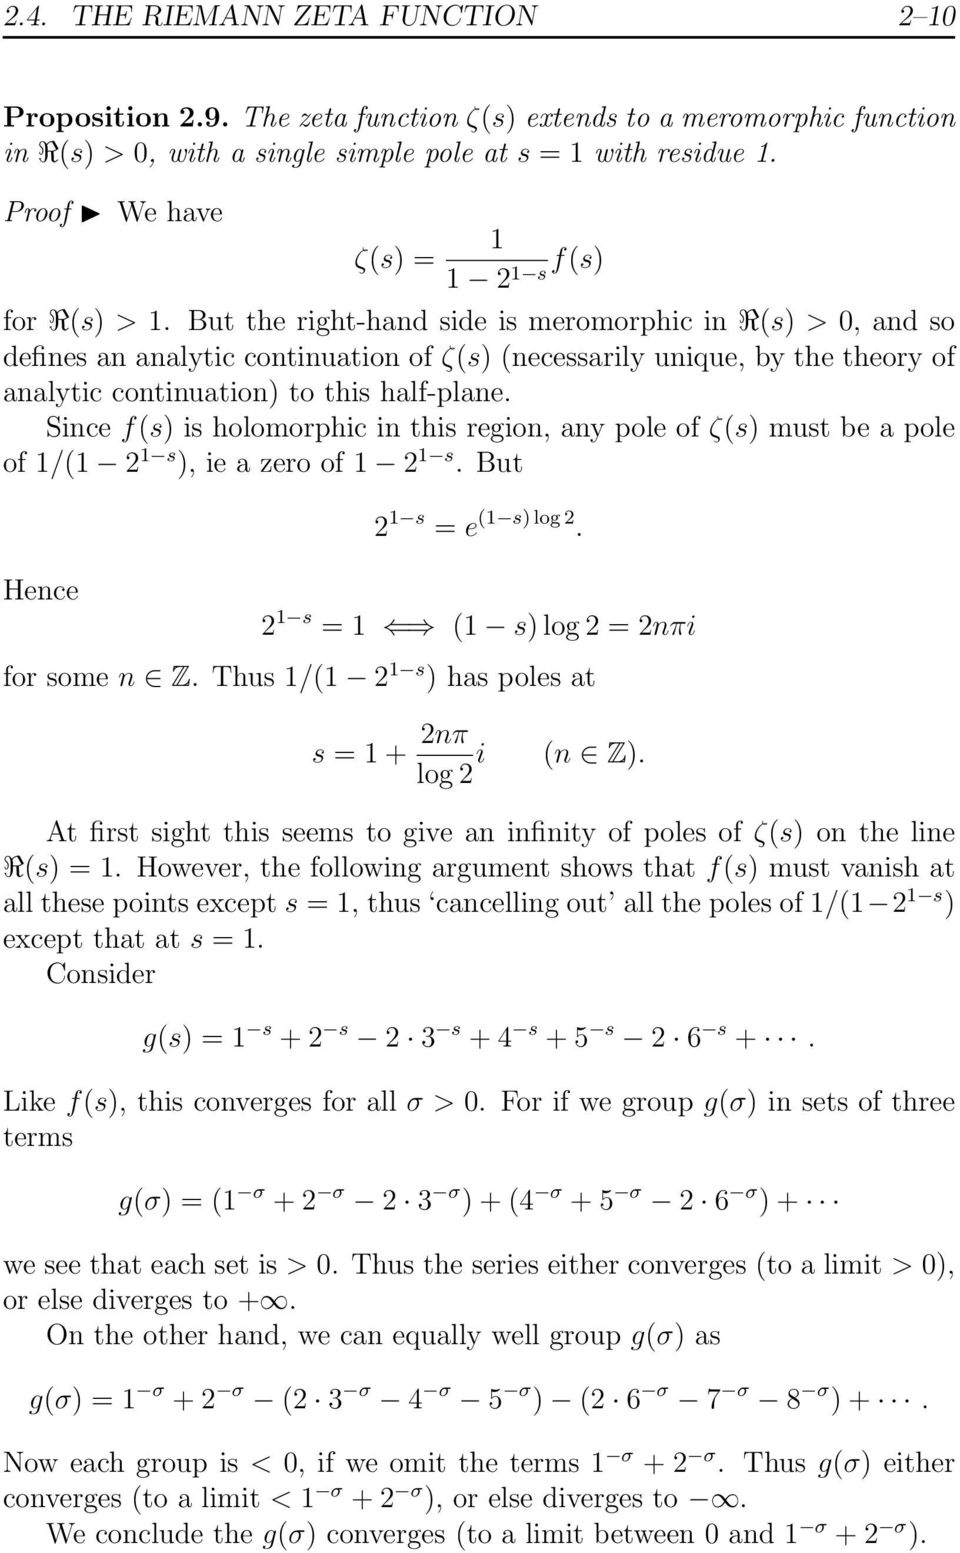 But the right-hand side is meromorphic in R(s) > 0, and so defines an analytic continuation of ζ(s) (necessarily unique, by the theory of analytic continuation) to this half-plane.